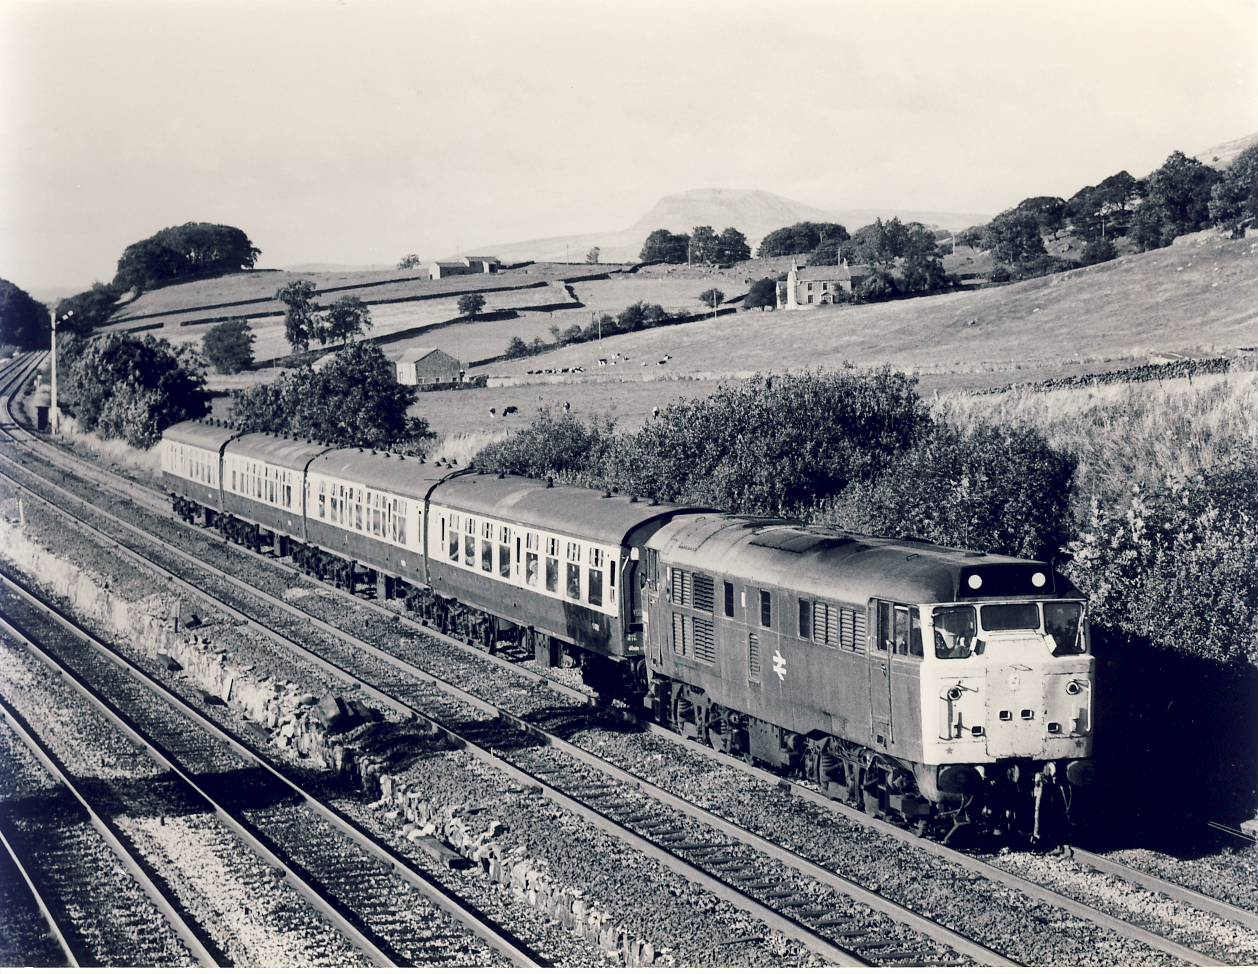 1982 31.183  approaches Settle Junction Train Photo refSC155 Measure approx 6.5 x 8.5 inches / 16cm x 21cm - an original 'W.A.Sharman' black and white photographic print pre-owned item in very good condition. Details on reverse.